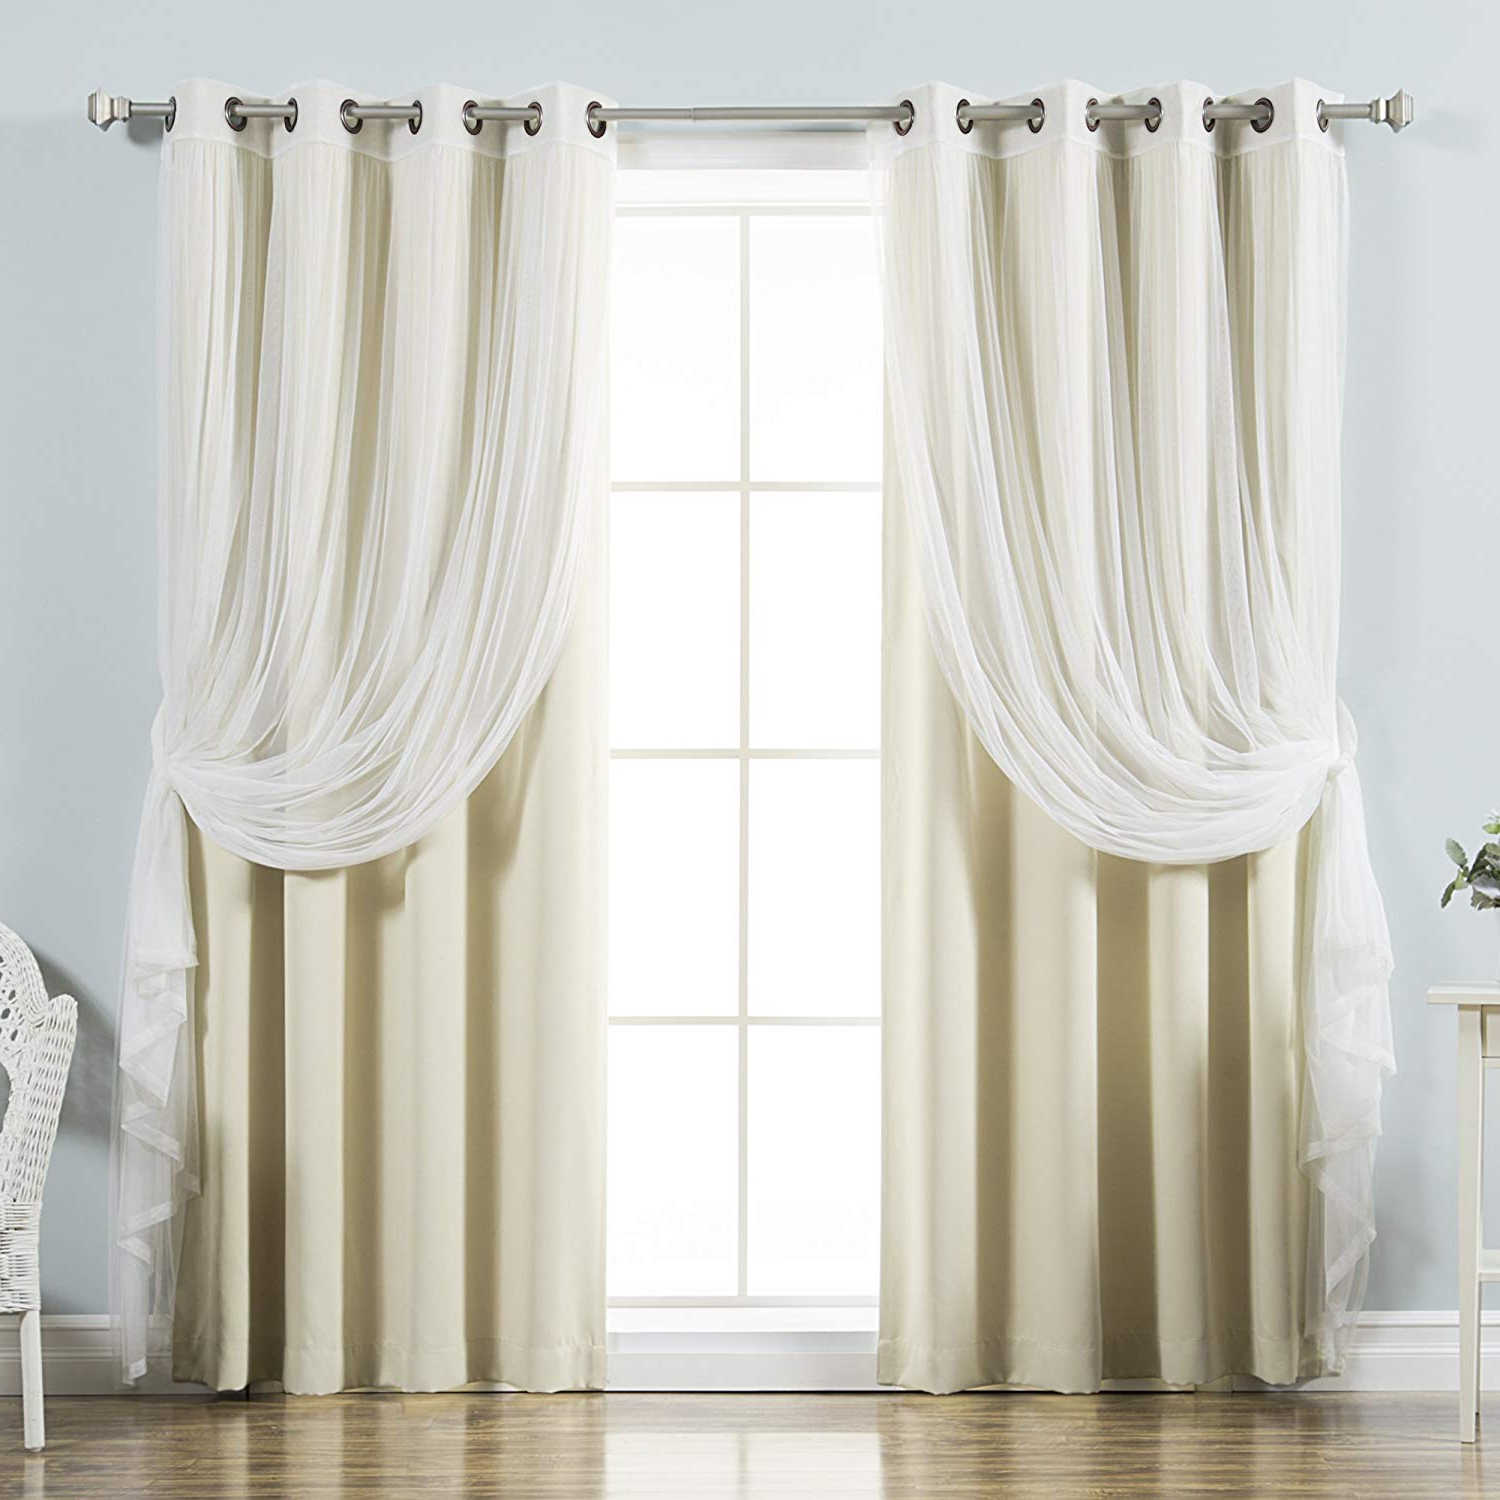 """Famous Best Home Fashion Mix & Match Tulle Sheer Lace & Blackout Curtain Set – Antique Bronze Grommet Top – Beige – 52""""wx 96""""l – (2 Curtains And 2 Sheer Throughout Mix & Match Blackout Tulle Lace Bronze Grommet Curtain Panel Sets (View 5 of 20)"""